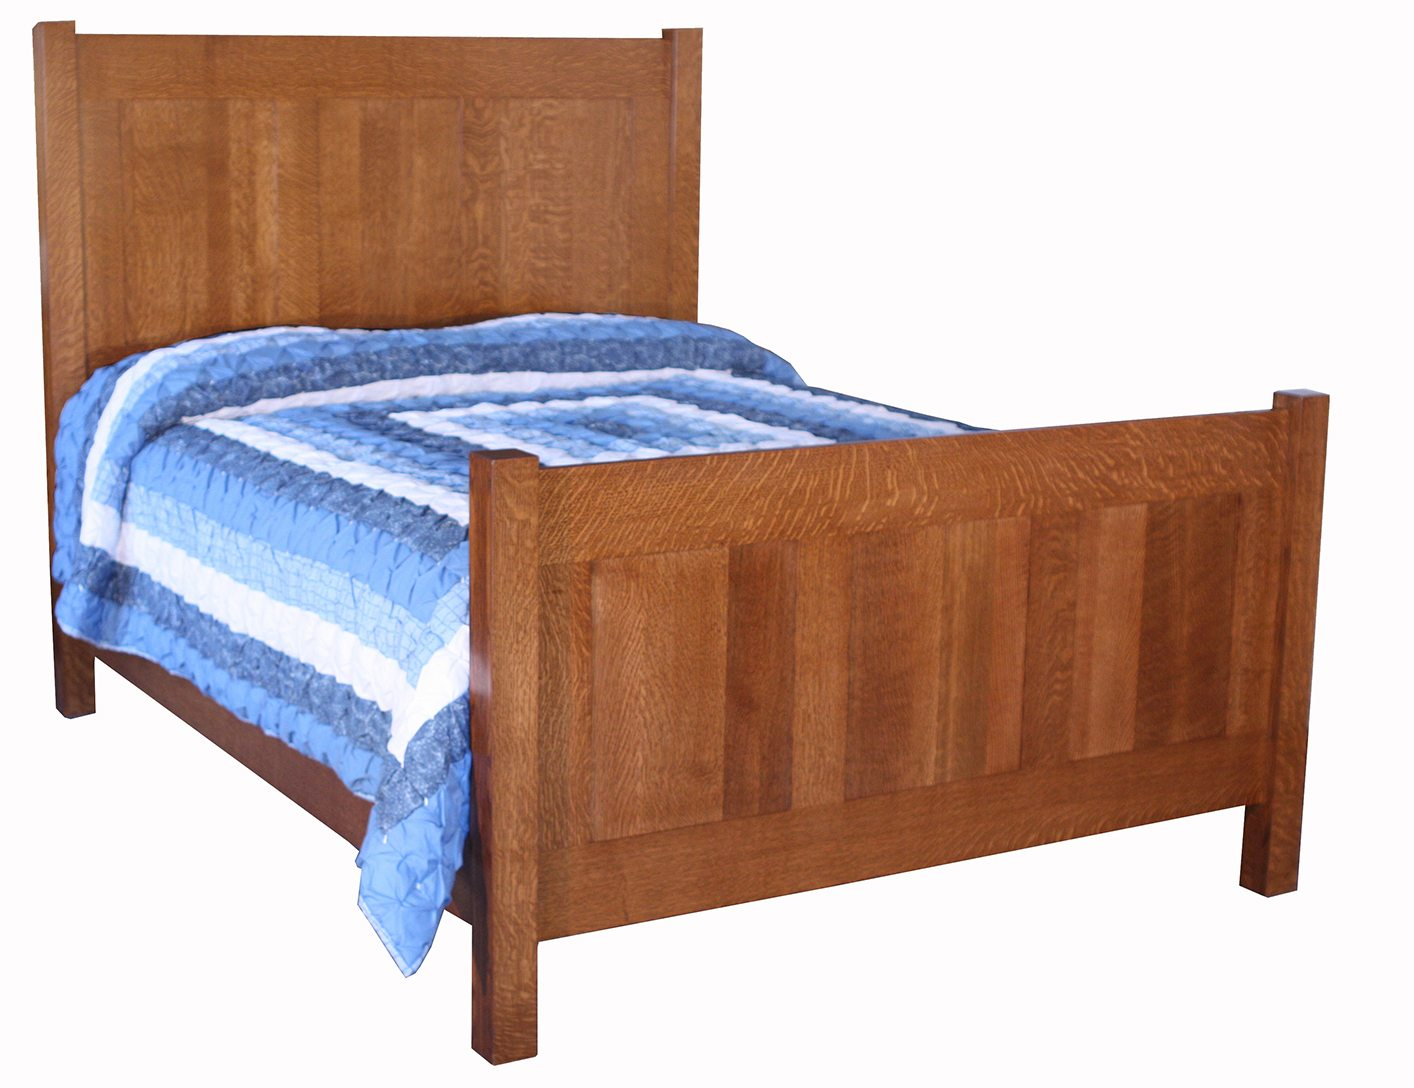 Amish crib for sale - 3 Panel Shaker Bed